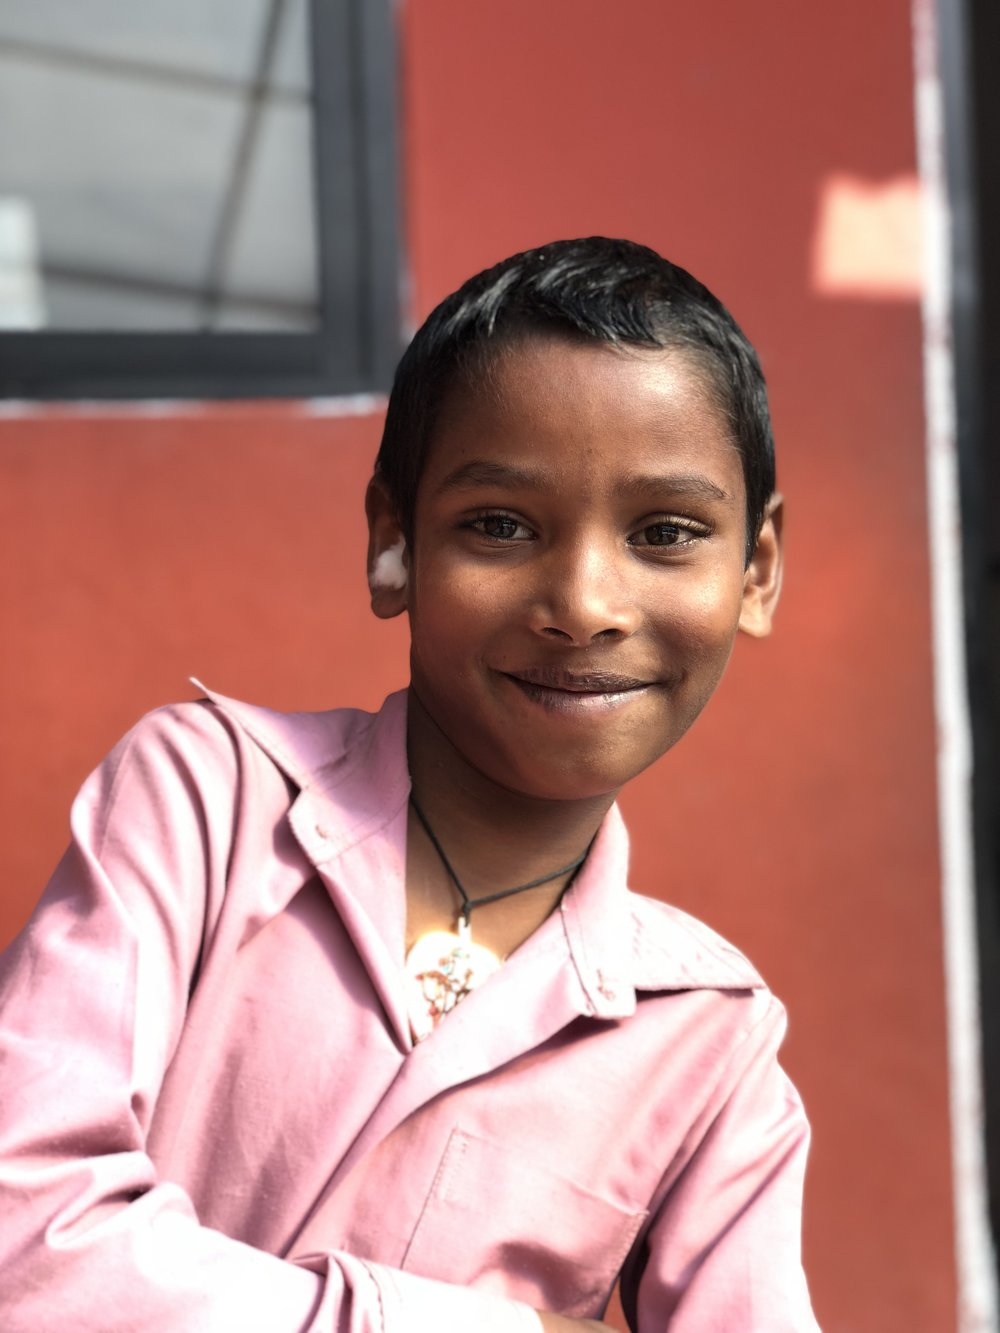 Rajkumar  Age 11  He wants to become a pilot